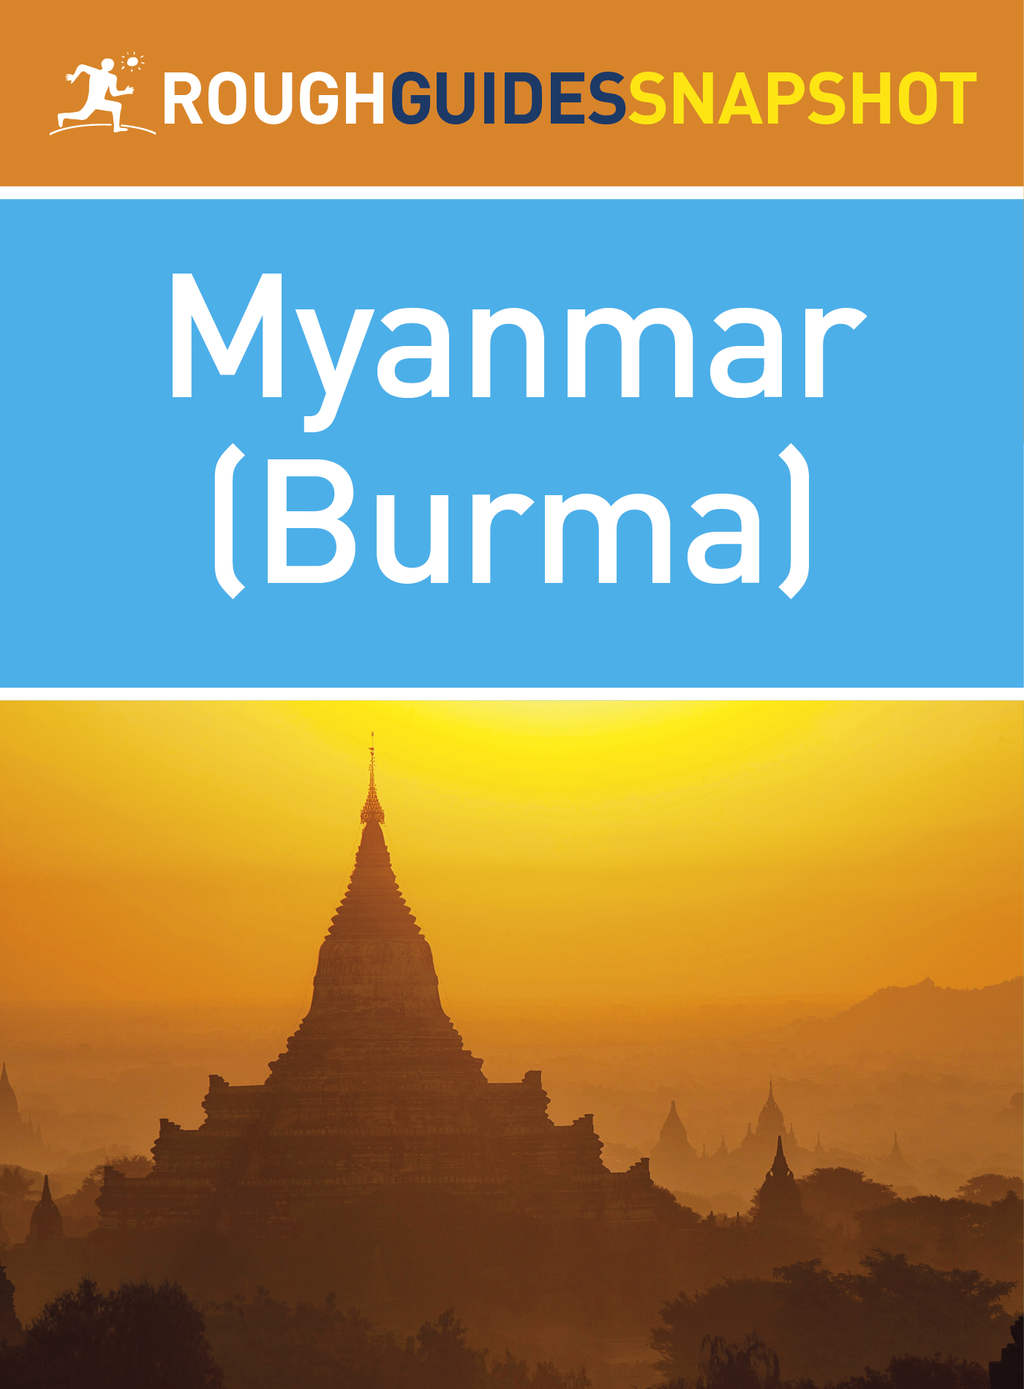 Rough Guide Snapshot Myanmar (Burma)